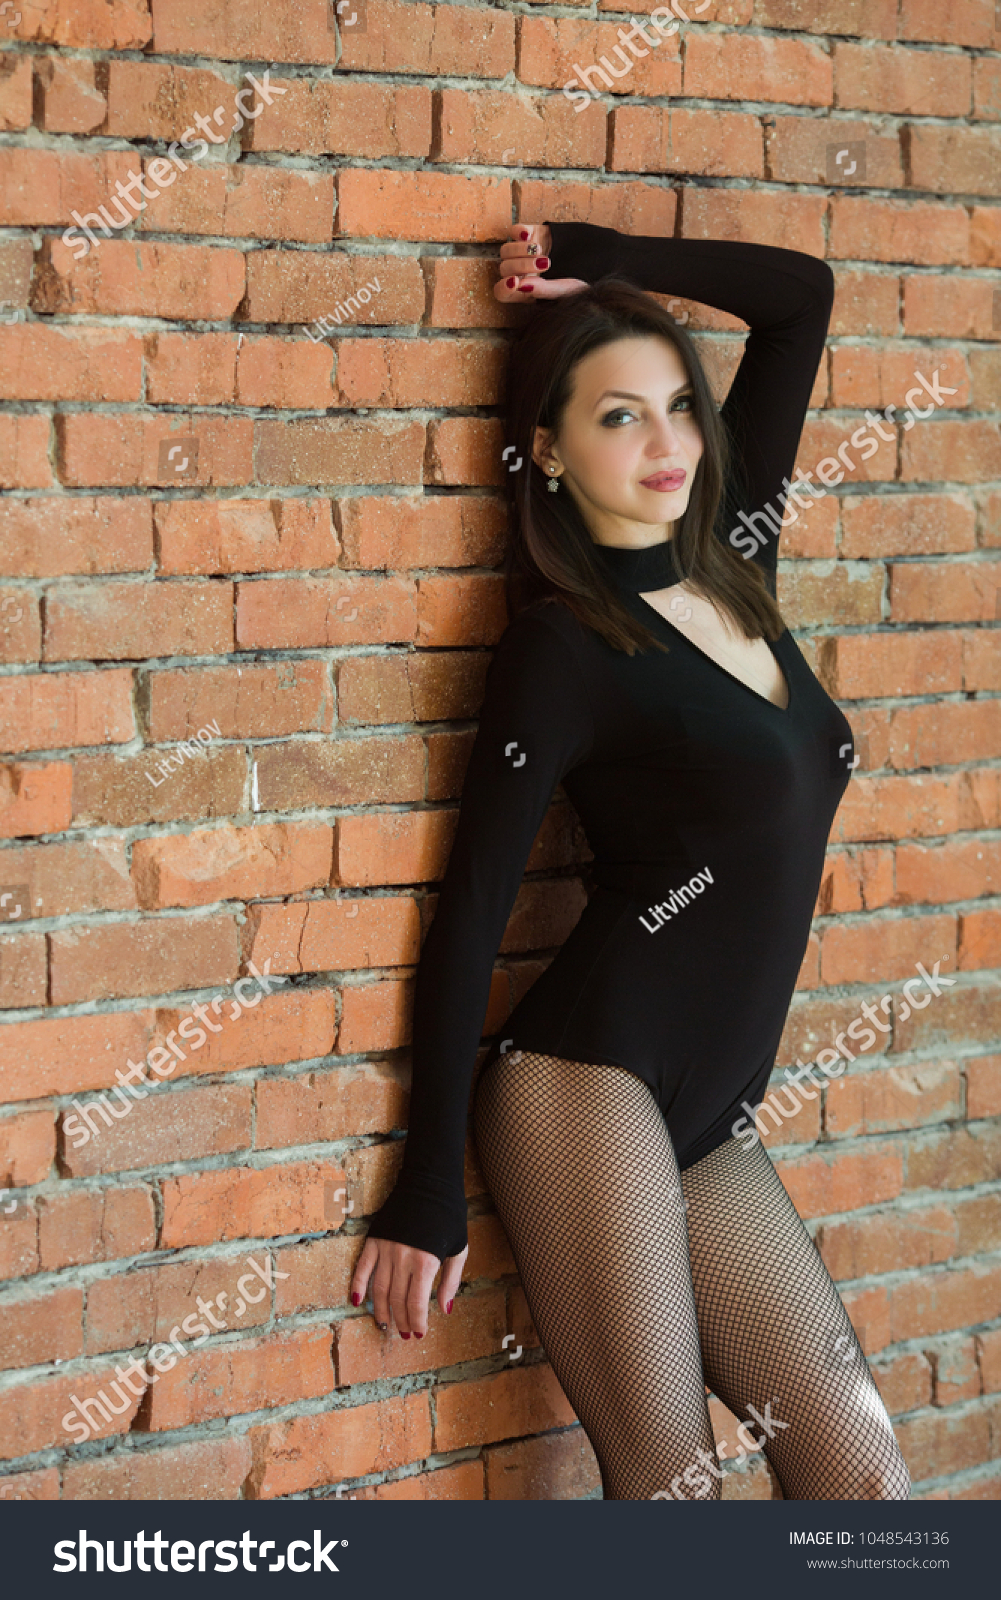 beautiful young slender girl in black bodie standing near a brick wall #1048543136